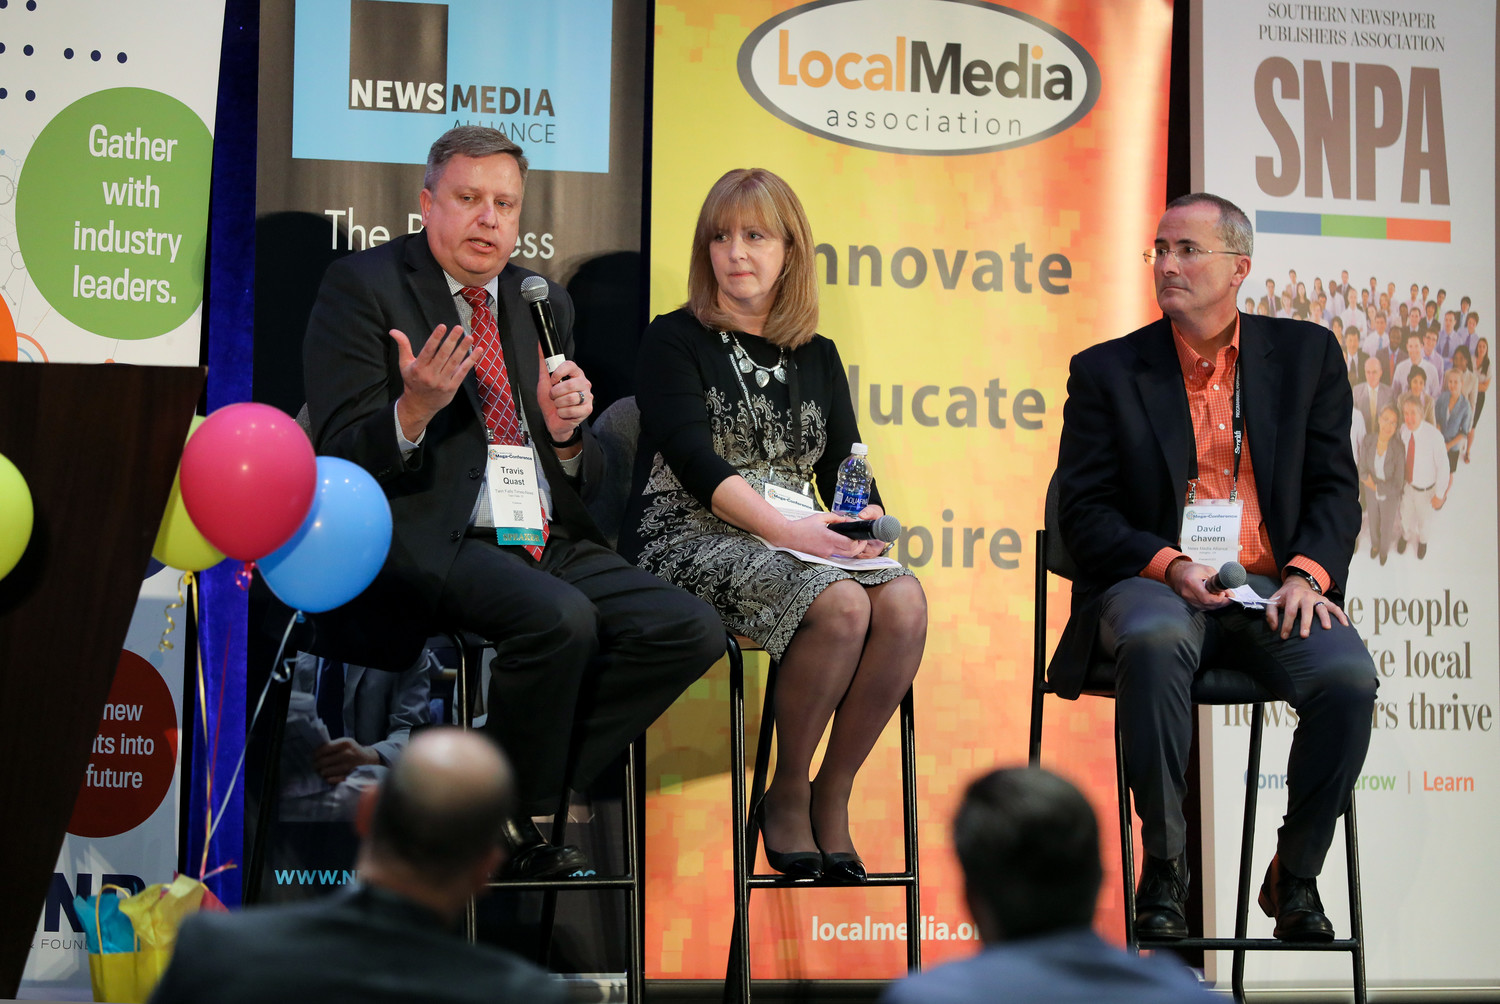 Travis Quast of the Twin Falls Times-News joins Jane Elizabeth of API and David Chavern of the News Media Alliance on stage: Real Tools for Combatting Fake News